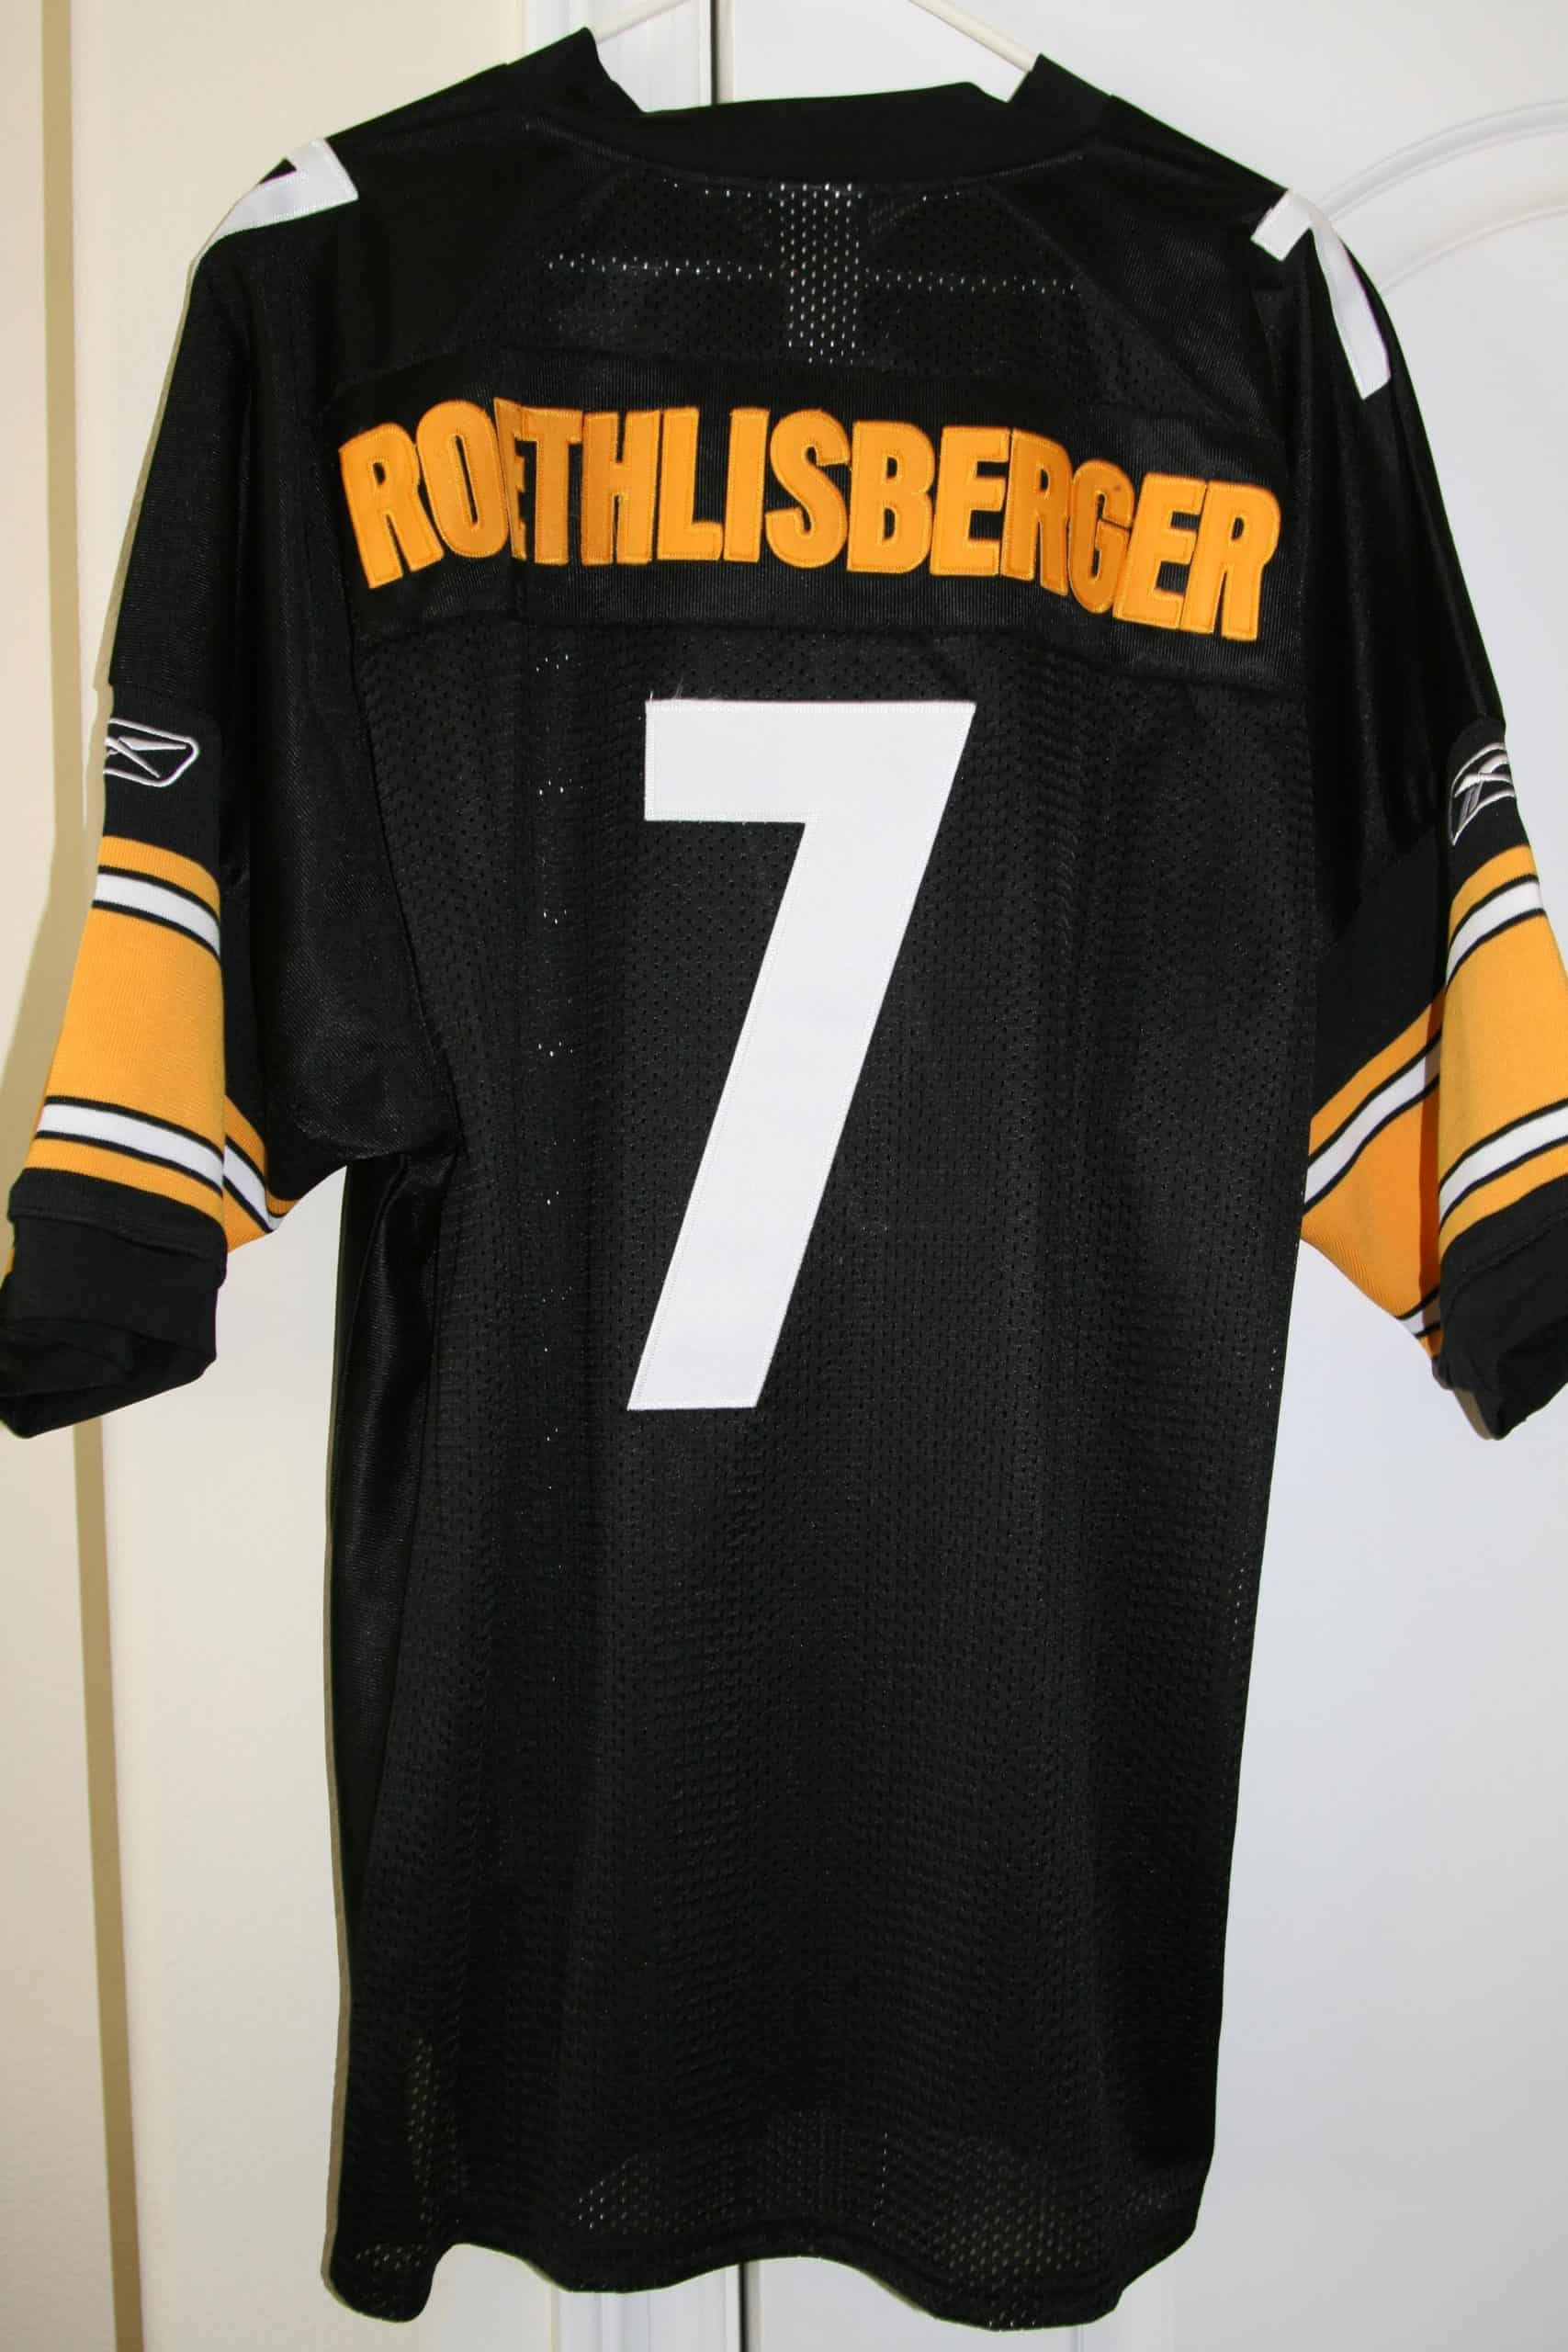 ben roethlisberger game worn jersey